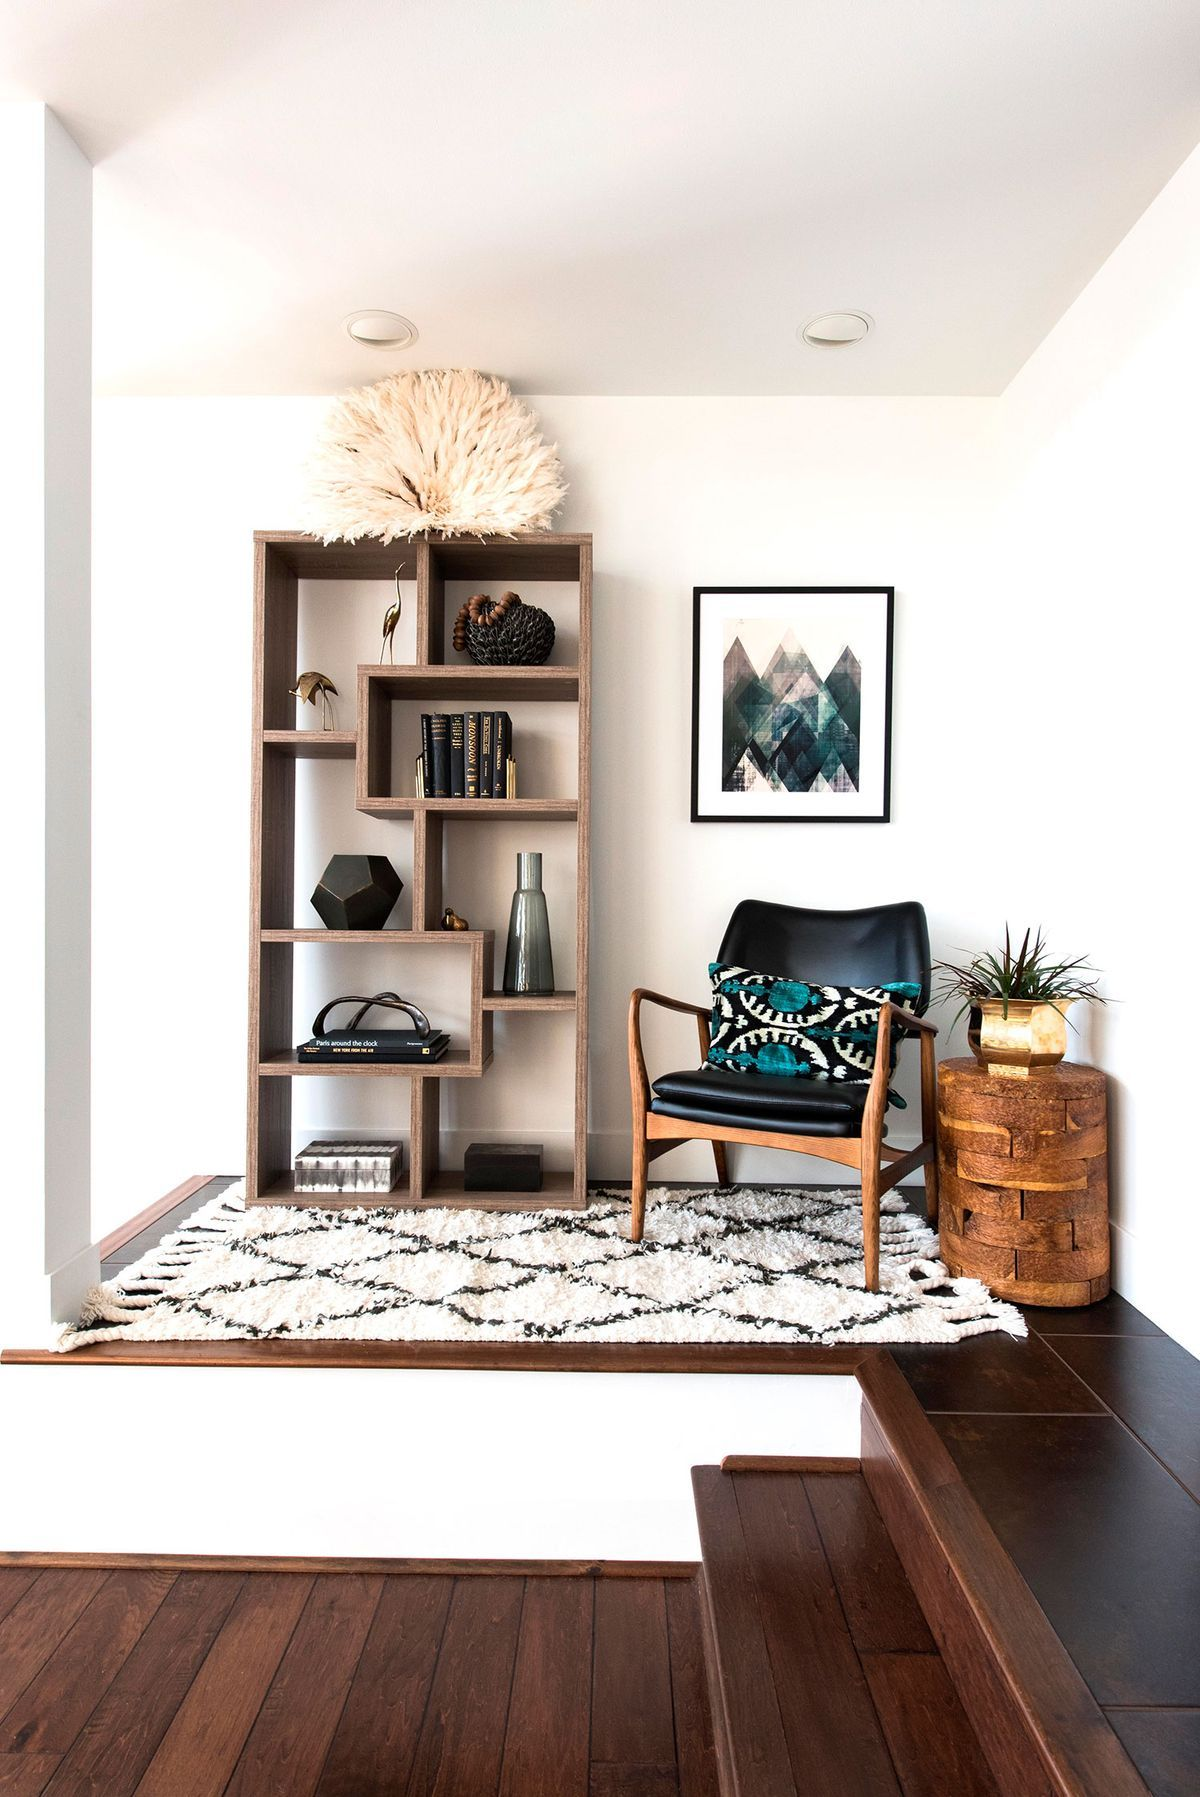 Wonderful Bright White Reading Nook With Bookshelf, Chair And Printed Rug. Wood  BookshelvesBookshelf Living RoomBookcaseScandinavian ... Part 13